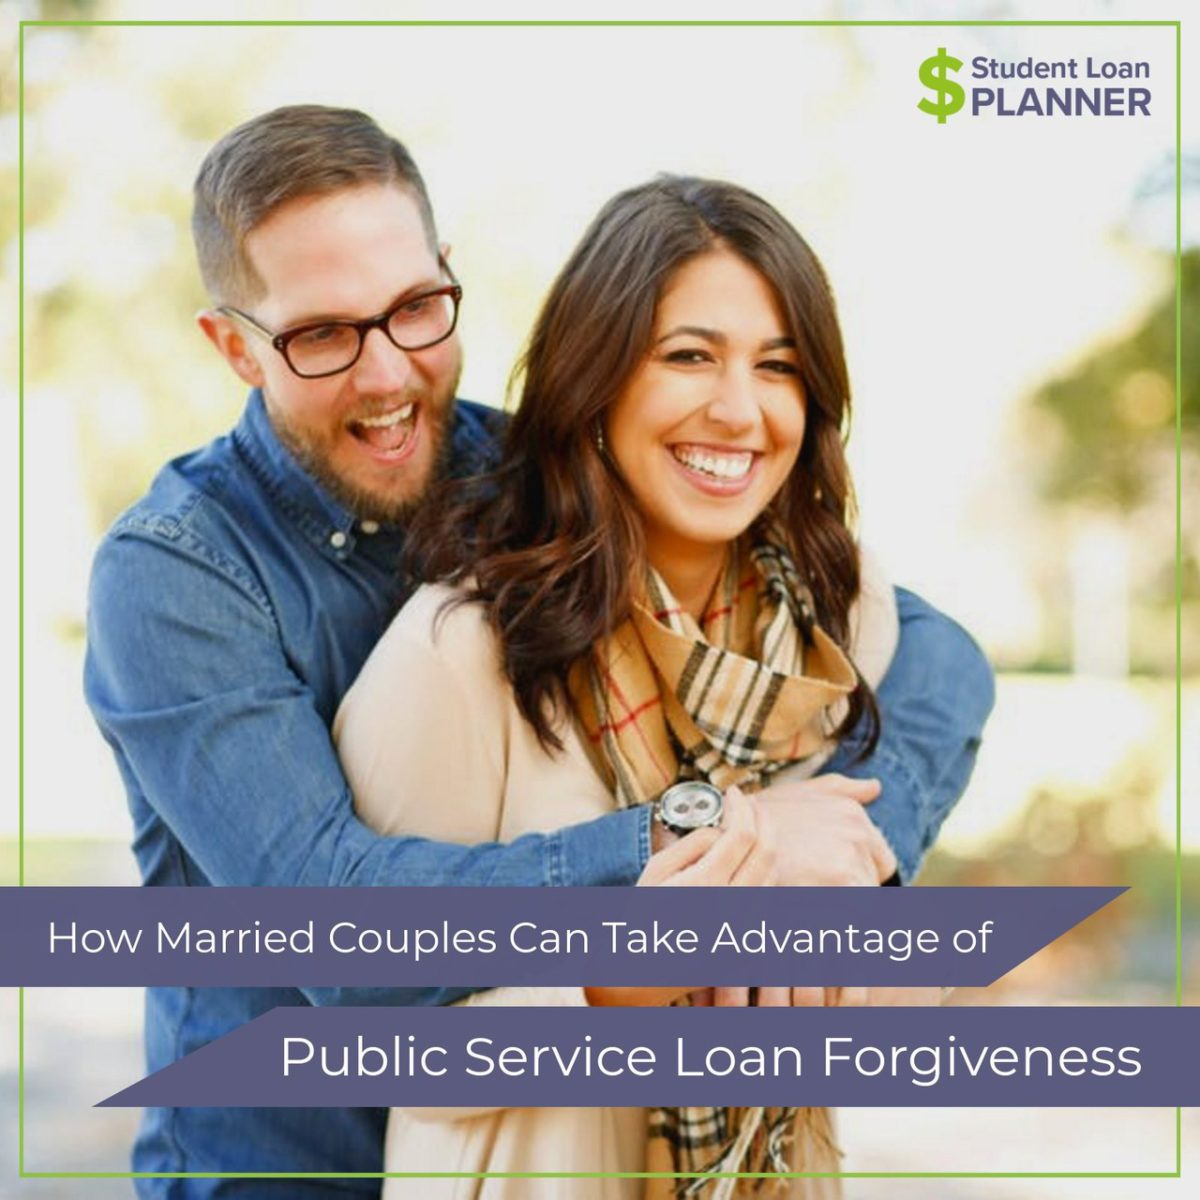 No matter how you file your taxes, title your bank accounts, or think about your money, when you get married your student loans WILL affect your spouse.Here's how married borrowers going for PSLF can take advantage of their situation to save money.